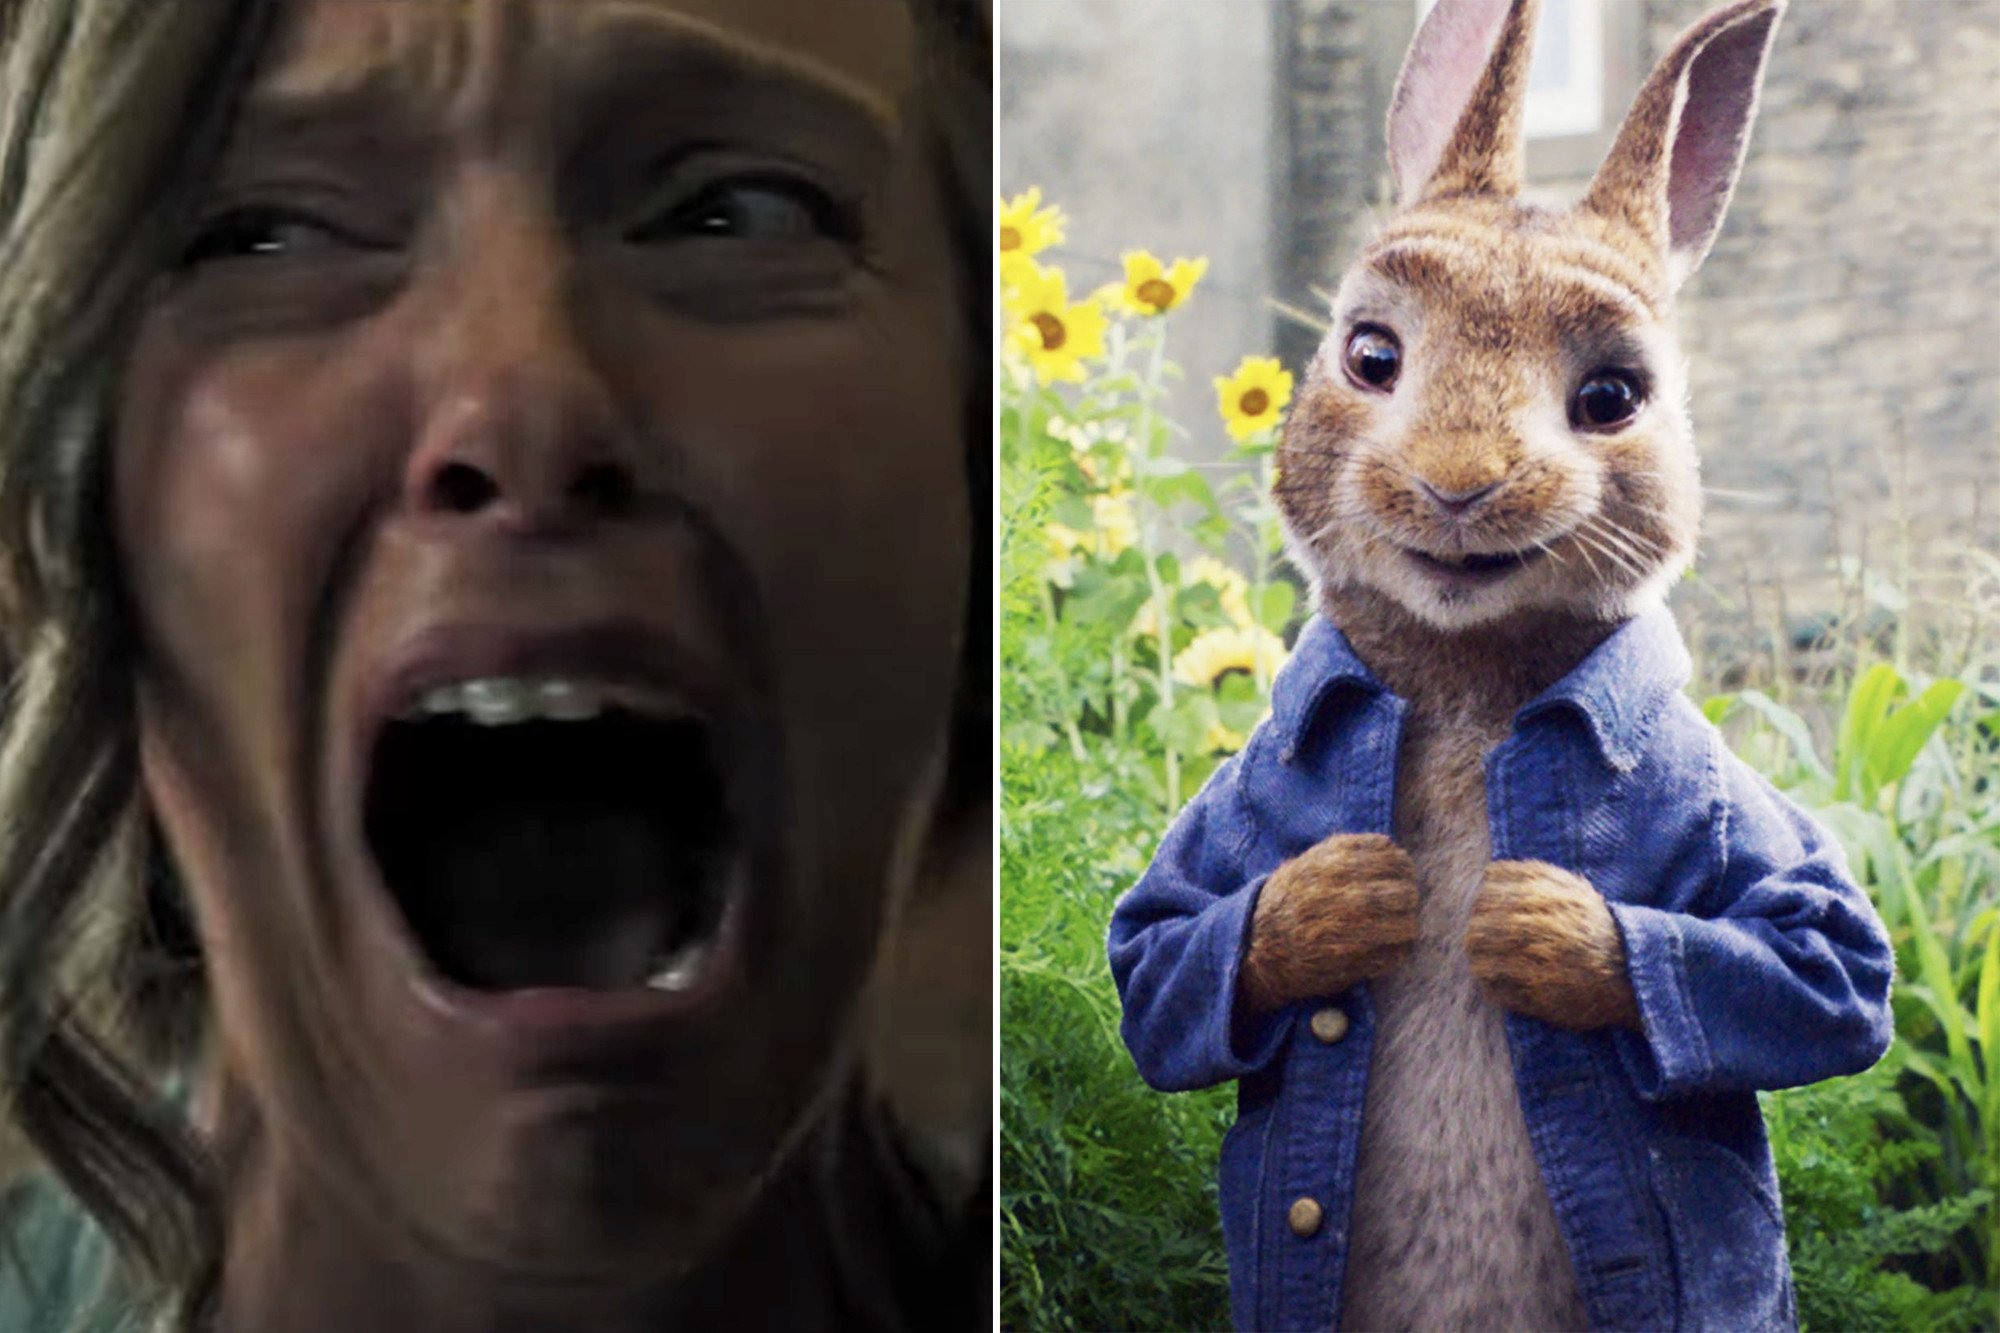 Kids traumatized by horror movie trailer at 'Peter Rabbit' showing